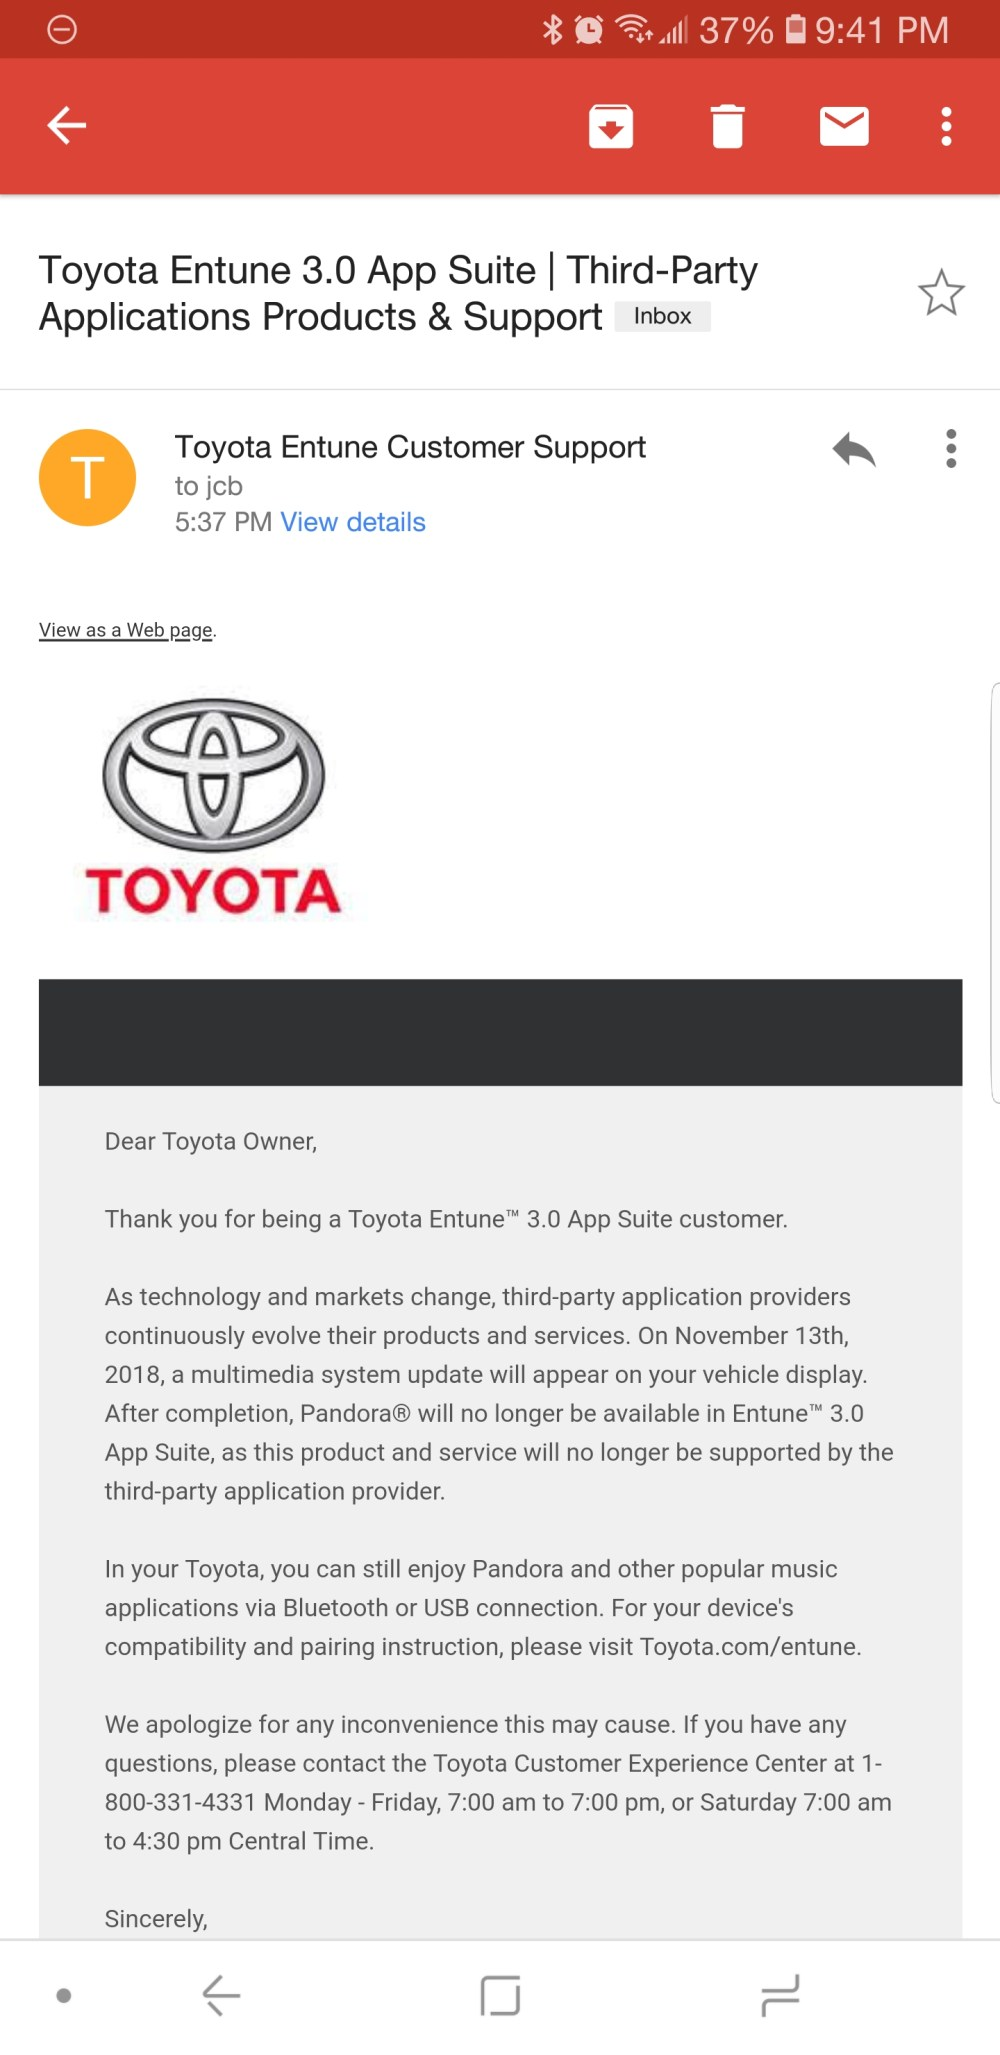 medium resolution of i emailed toyota to complain about pandora not working on entune got a response back saying they are dropping support for it as of november